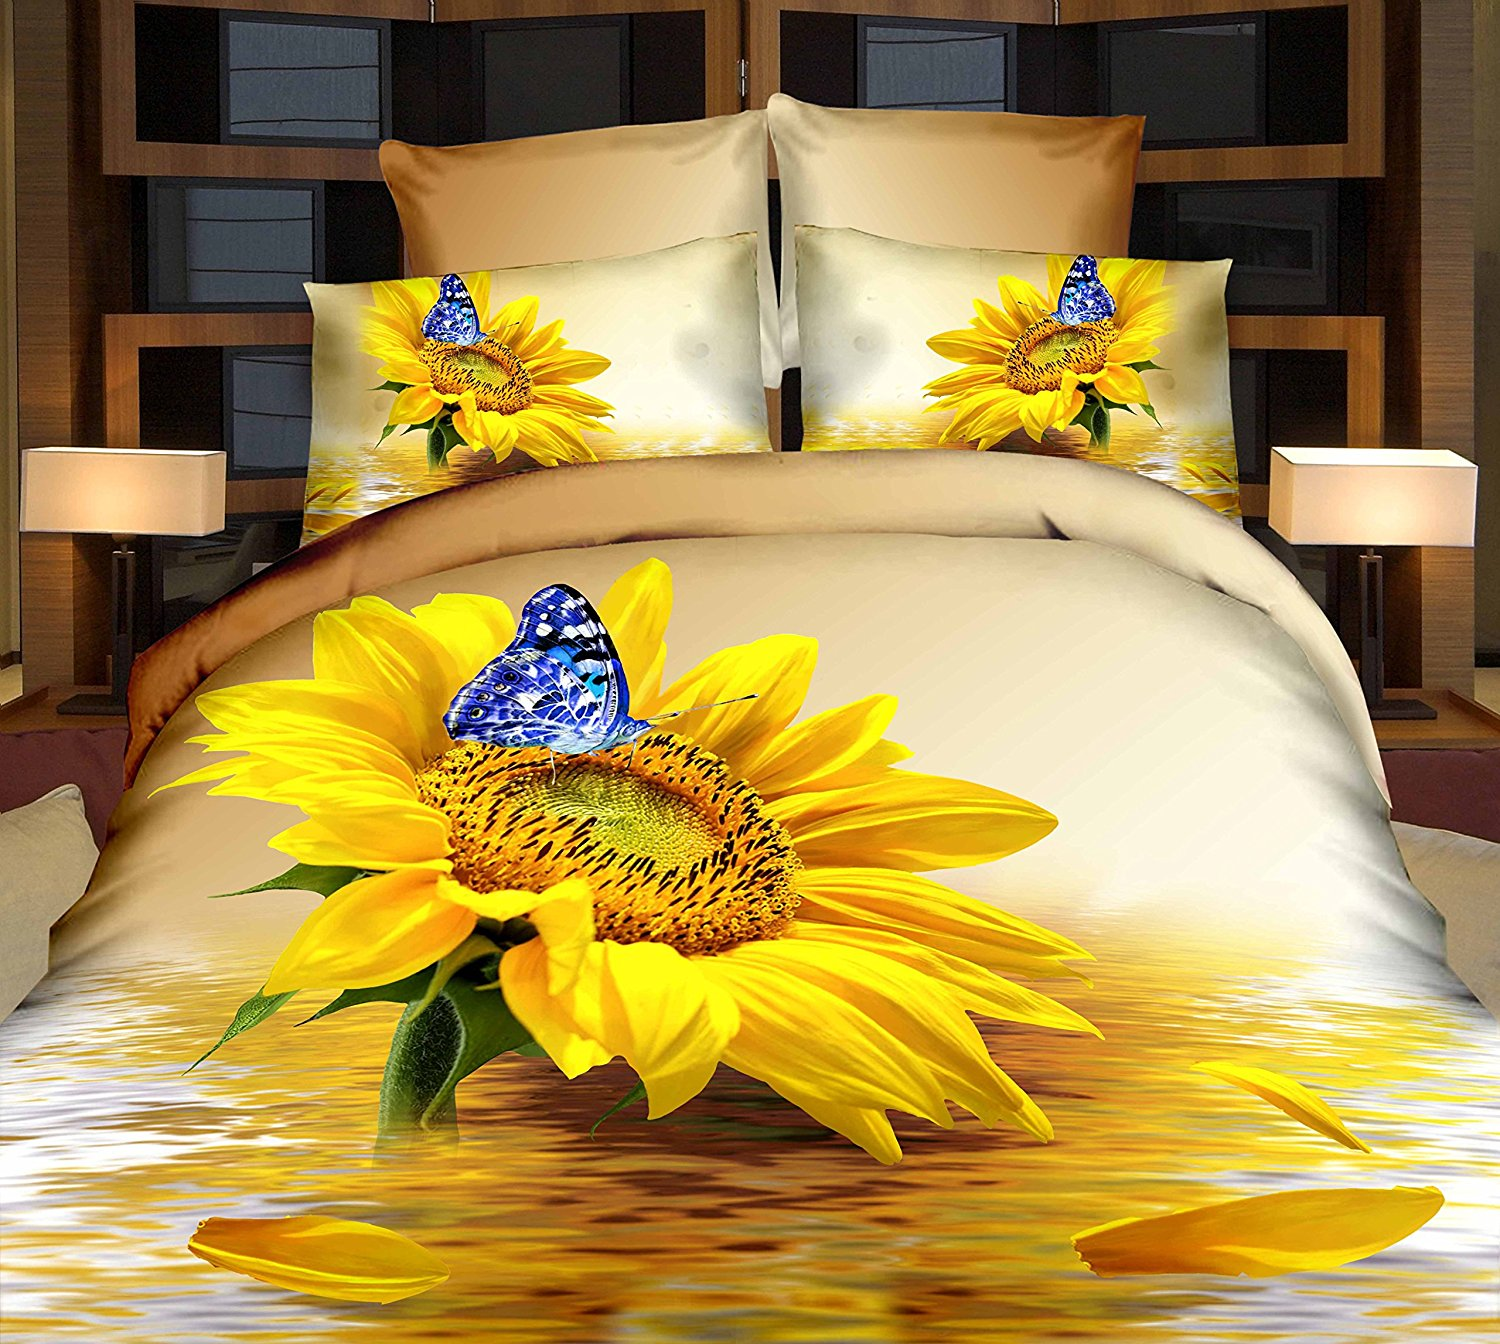 Alicemall Full 3D Bedding Charming Bright Yellow Sunflower and Blue Butterfly Water Reflection Print 4-Piece Duvet Cover Sets, 4 PCS 100% Cotton Bedding Set (Full)